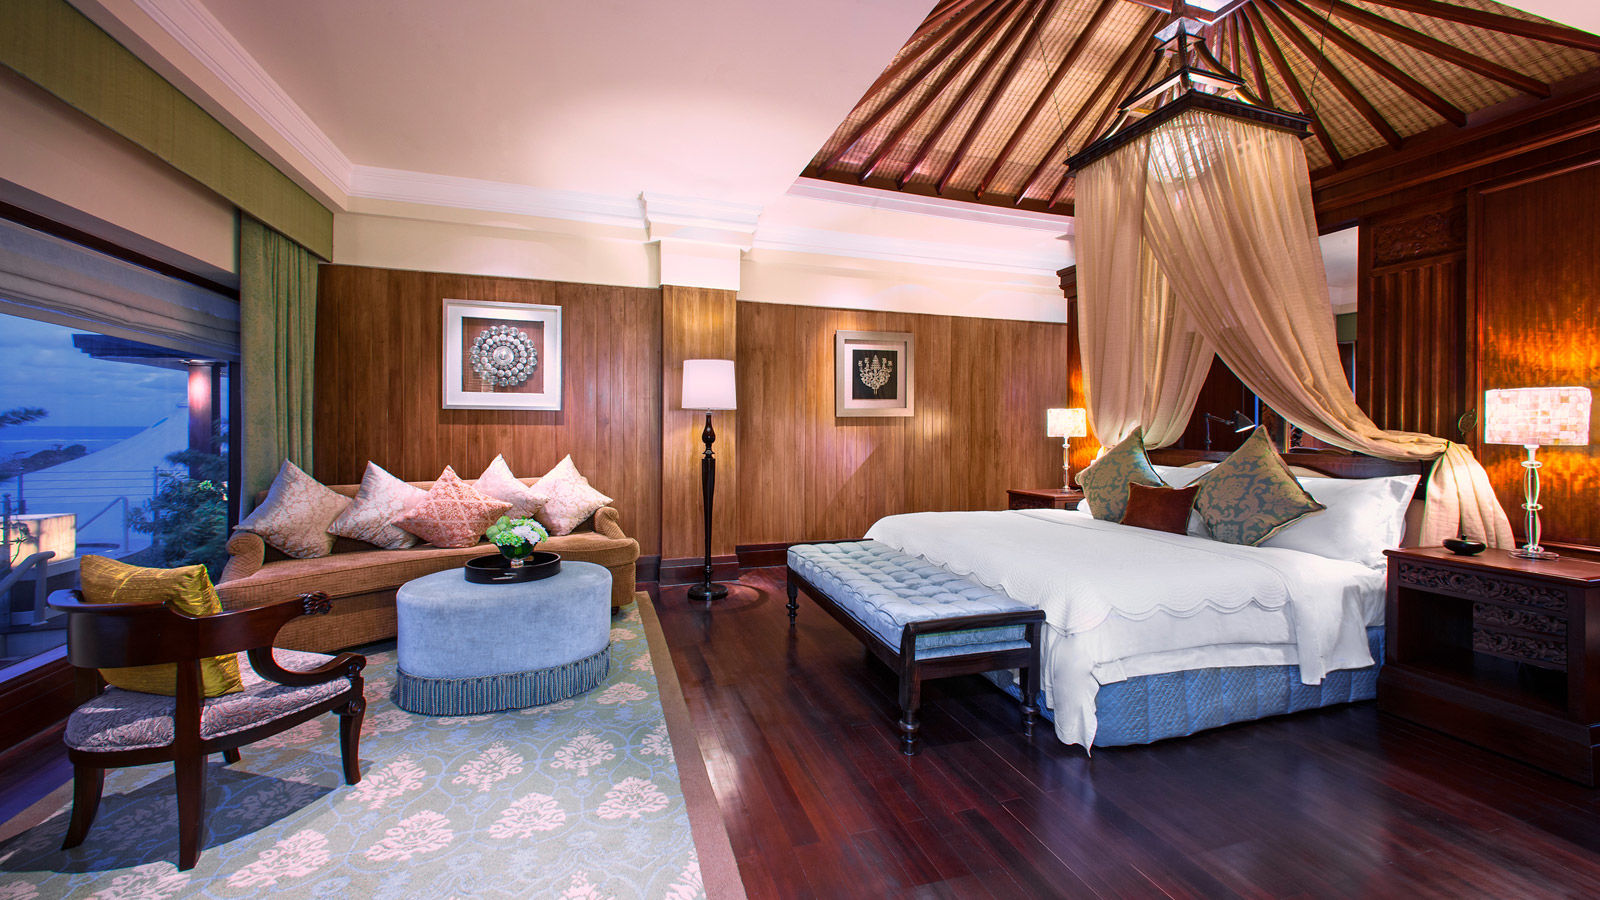 Luxury accommodation in bali st regis suite st regis for My villa